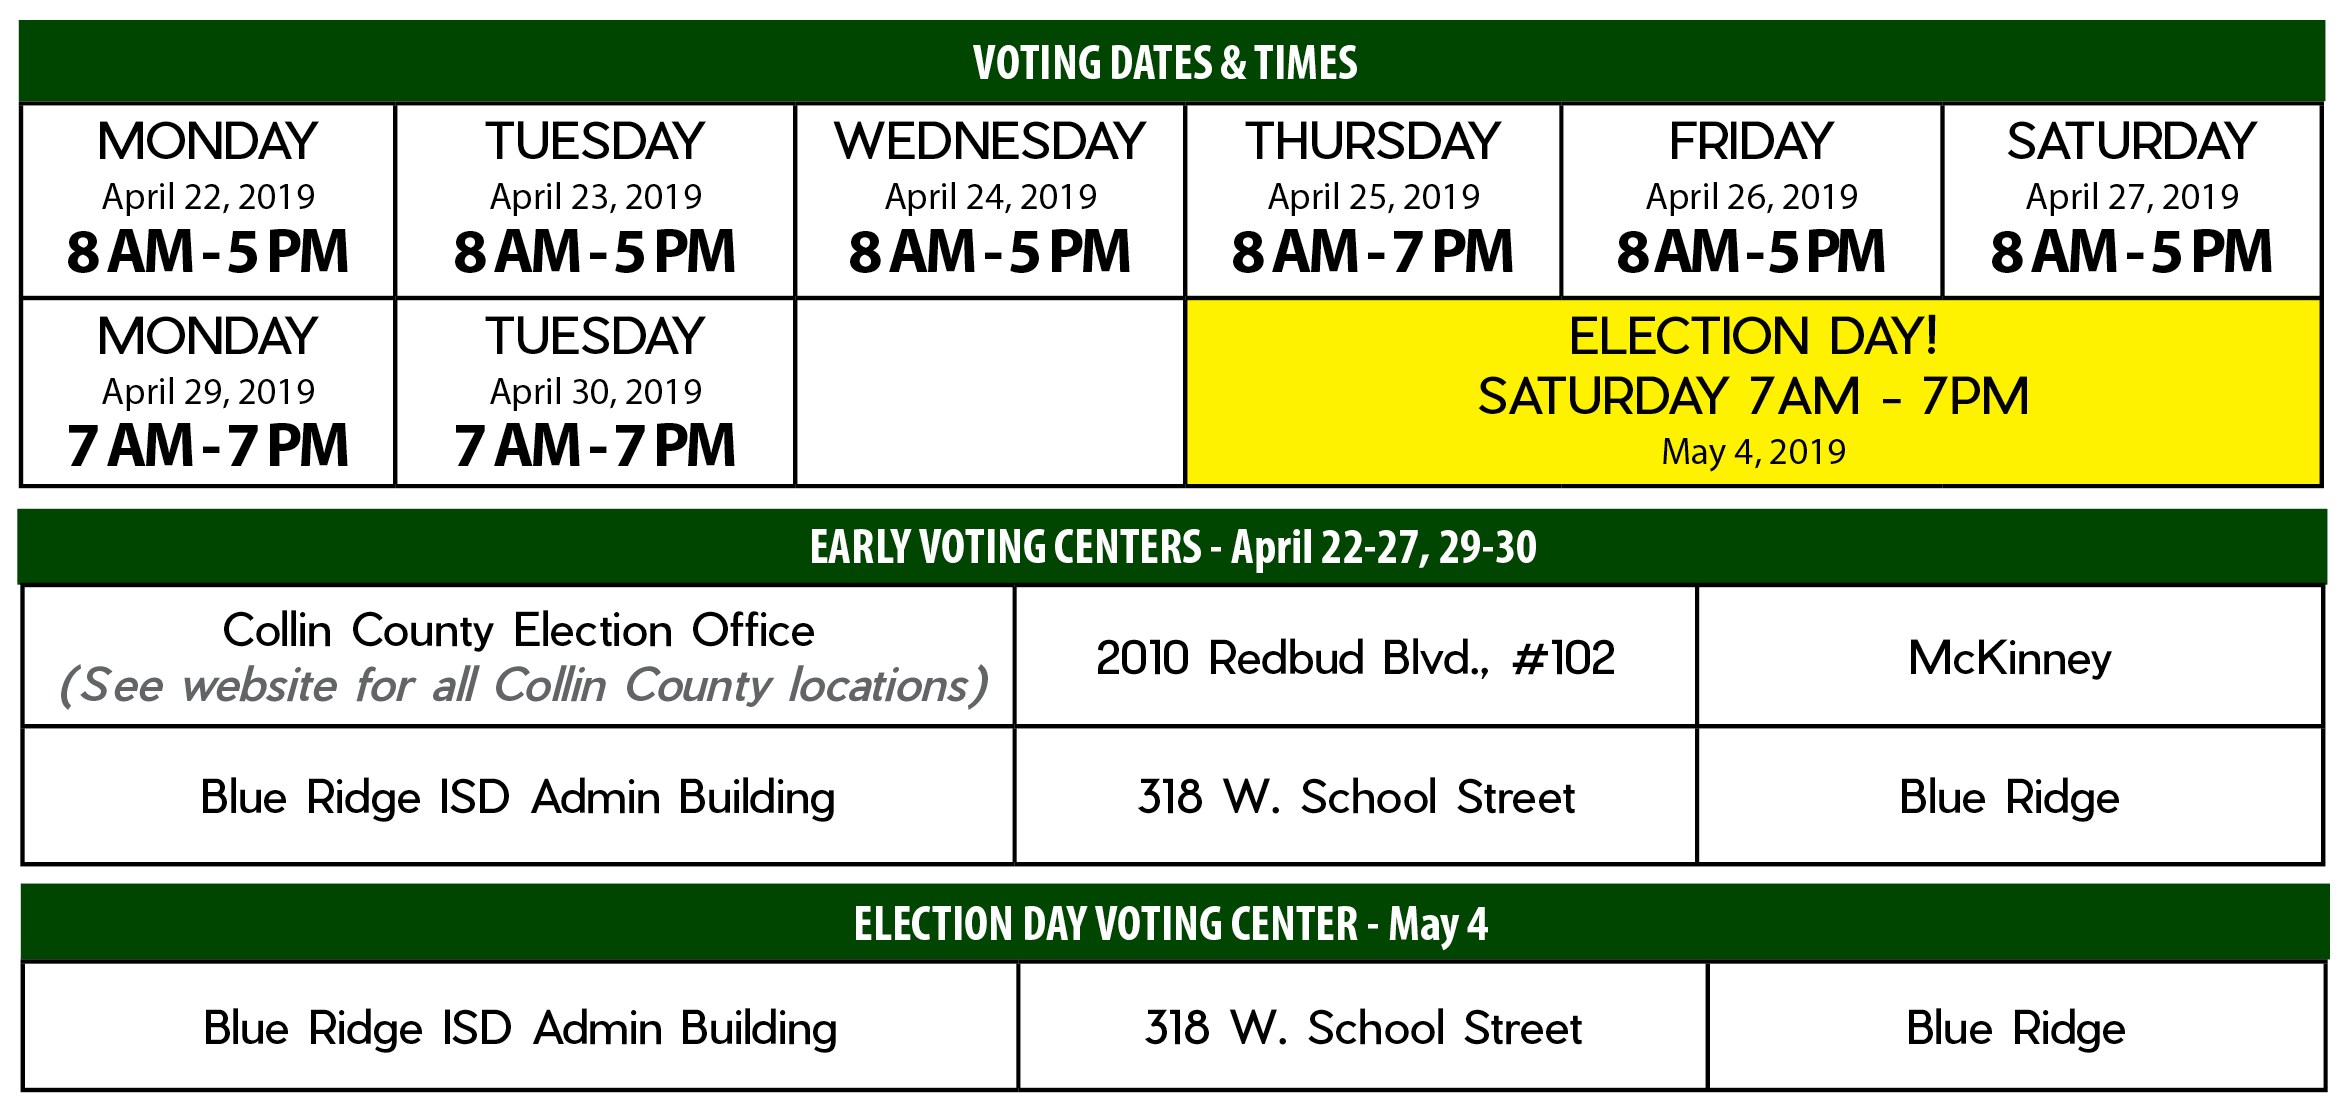 Voting Dates Graphic.png